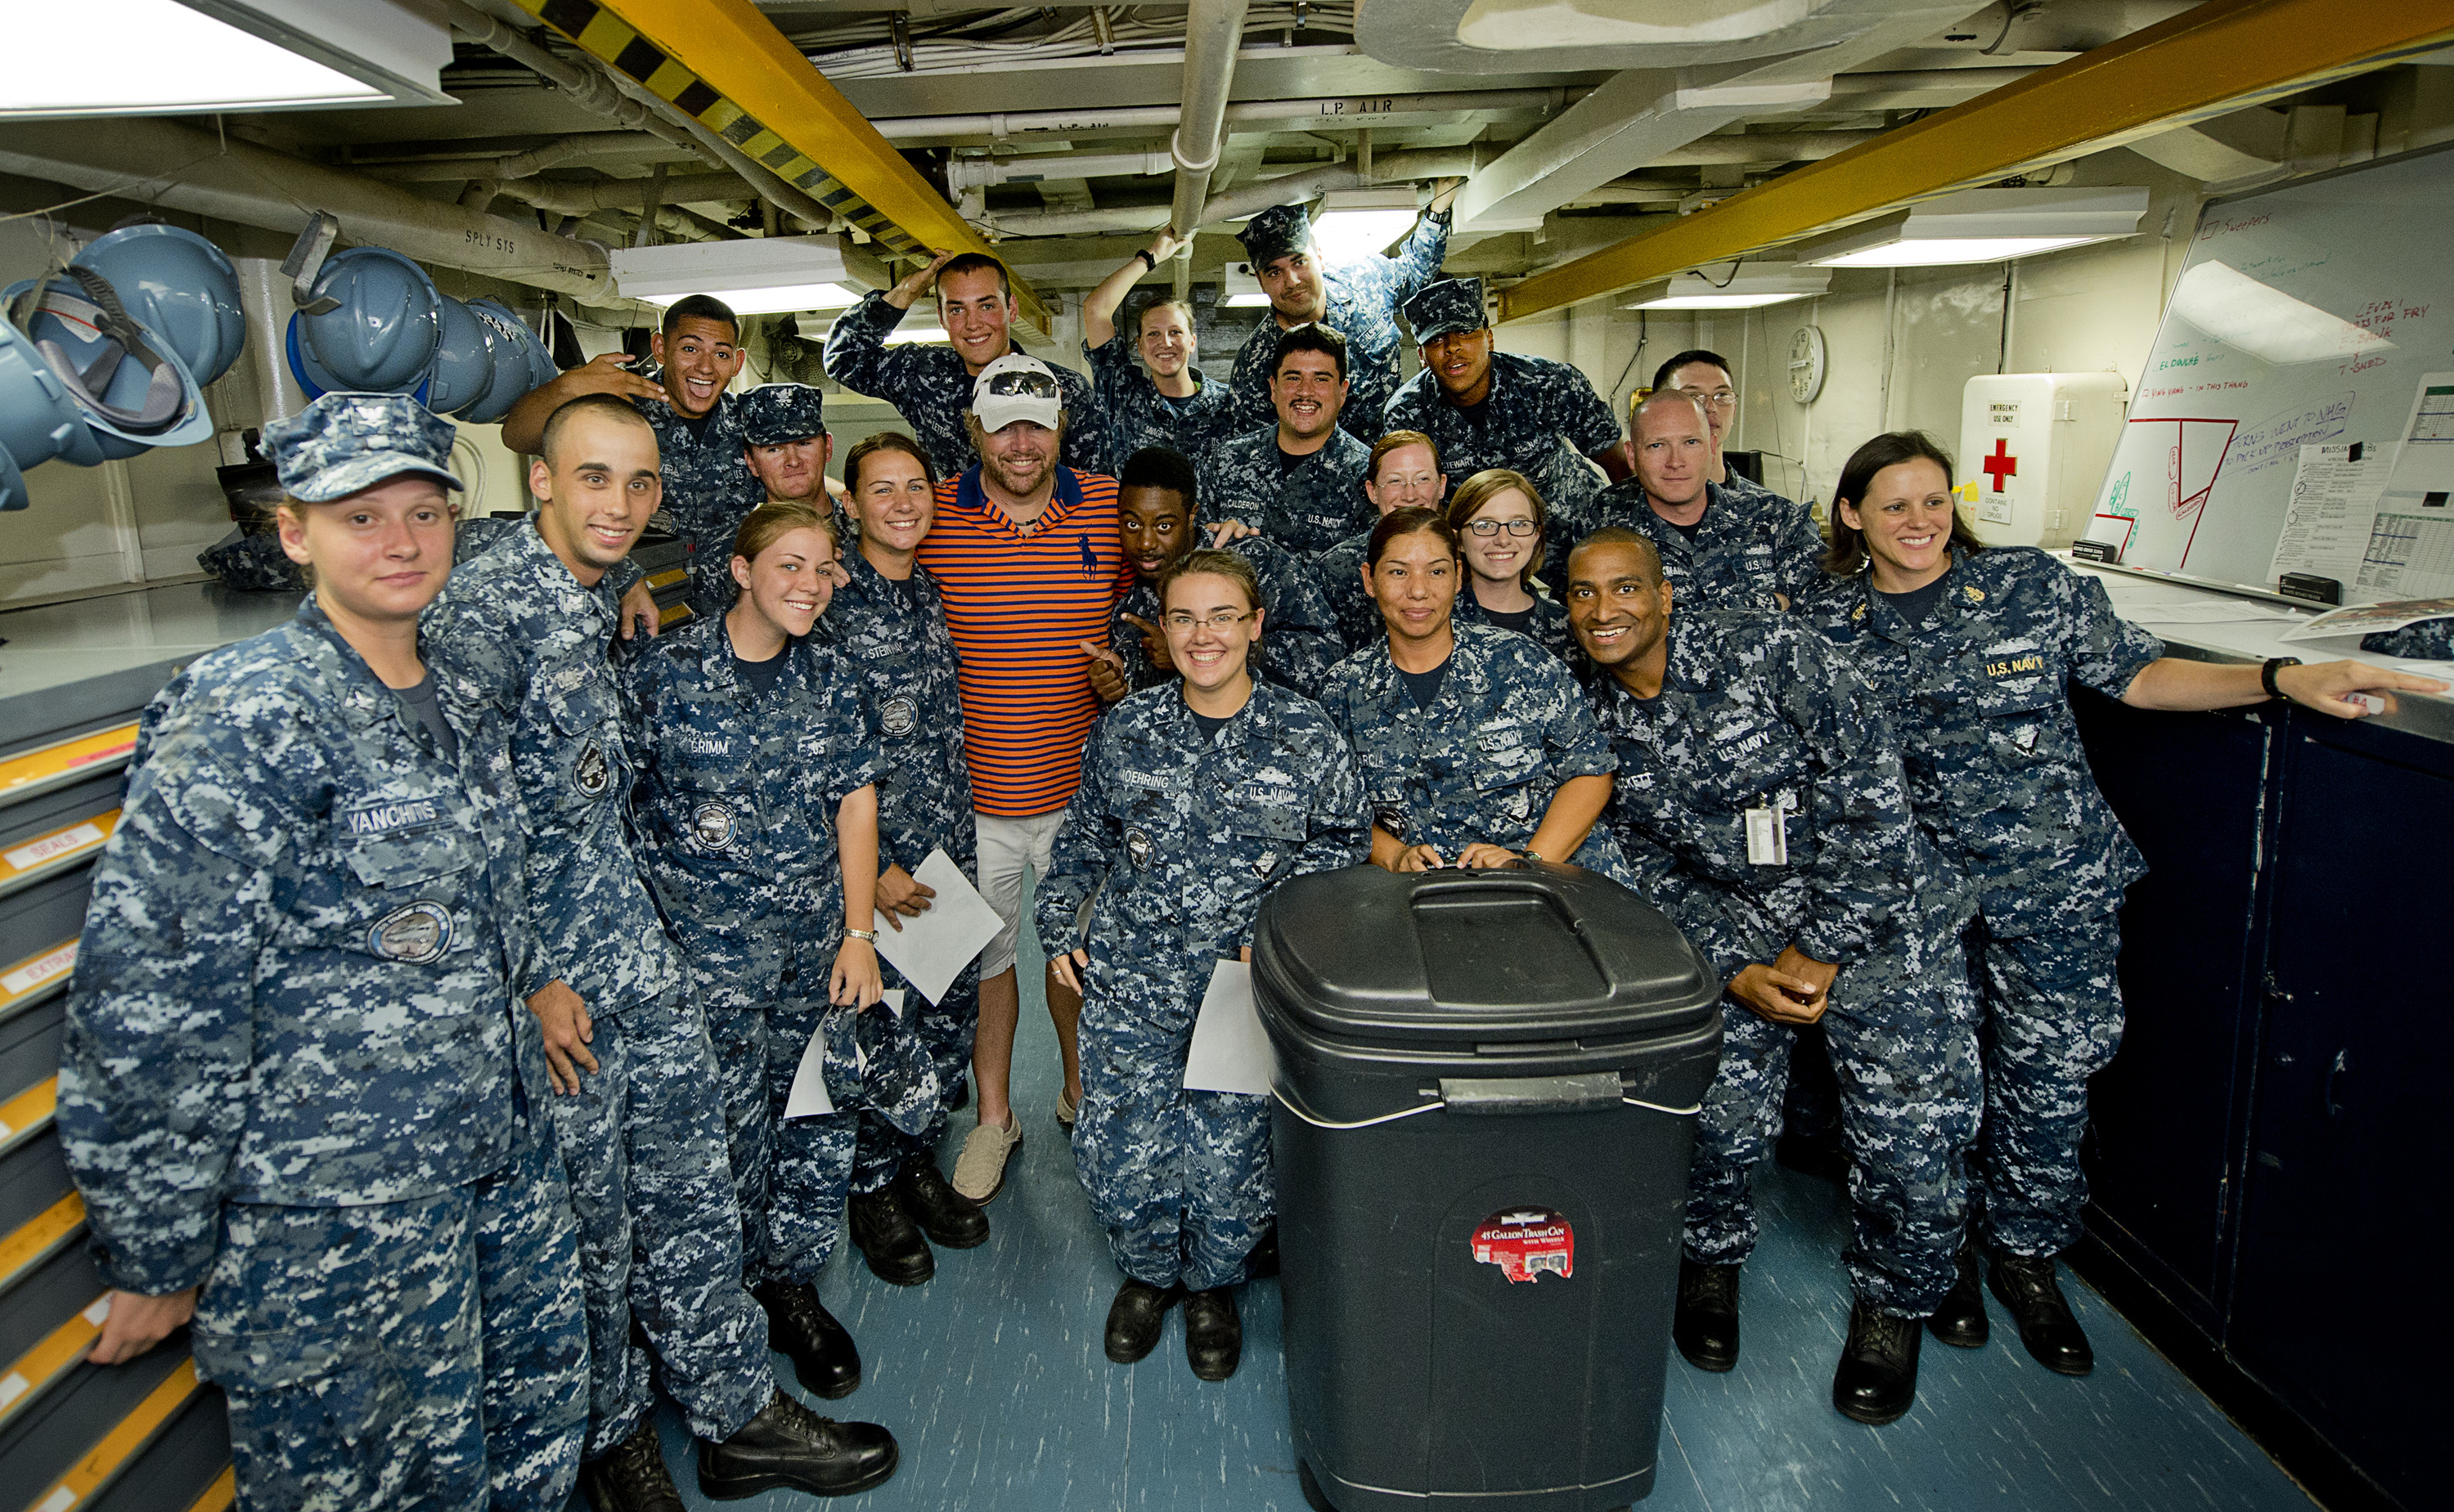 Toby Keith poses for a group photo with troops stationed in Guam in 2013. (Dave Gatley/USO)